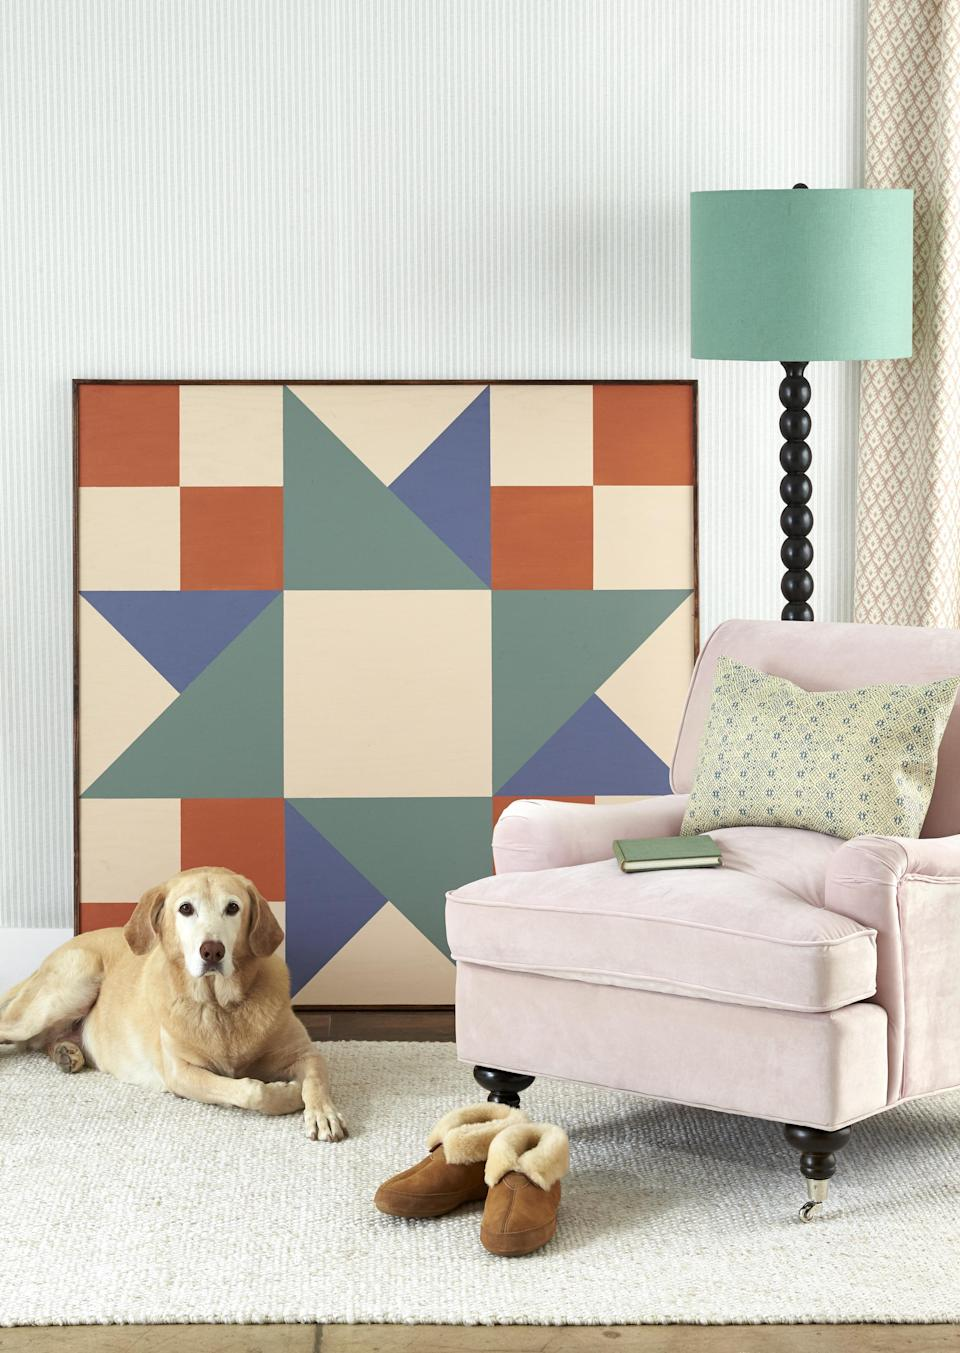 """<p>We have all been at home A LOT lately, and after a year plus of staring at the same four walls you might be feeling like it's time for a little decor redo. Don't fret, there is no need to tear down walls, buy all <a href=""""https://www.countryliving.com/home-design/g4654/cozy-chairs/"""" rel=""""nofollow noopener"""" target=""""_blank"""" data-ylk=""""slk:new furniture"""" class=""""link rapid-noclick-resp"""">new furniture</a>, and, well, break the bank. You can shake things up by simply doing a bit of <a href=""""https://www.countryliving.com/diy-crafts/how-to/g1157/fun-summer-crafts/"""" rel=""""nofollow noopener"""" target=""""_blank"""" data-ylk=""""slk:DIY decor"""" class=""""link rapid-noclick-resp"""">DIY decor</a>. But don't worry if you're not feeling so crafty; many of these ideas simply require a trip to the antiques store or flea market. Stock up on different size and color baskets or Bundt pans, arrange them artfully on the living room or kitchen wall and voila, a whole new look! Maybe you are ready to step away from the computer and heat up the hot glue gun? We've got you covered there, too. There are a plethora of ideas here that'll have you reaching for your smock. Trying making sponge-painted nature silhouettes that can hang above your bed. Looking for a smaller project? Then try your hand a creating canning covered coasters—we promise they will look great on the picnic table at your next <a href=""""https://www.countryliving.com/entertaining/g801/summer-party-ideas-0609/"""" rel=""""nofollow noopener"""" target=""""_blank"""" data-ylk=""""slk:BBQ party"""" class=""""link rapid-noclick-resp"""">BBQ party</a>. These handmade projects are guaranteed to add a lot of charm and good vibes to you new and improved spruced up home. Post a picture of your project in the comments section below. We would love to see what you create! Happy crafting!</p>"""